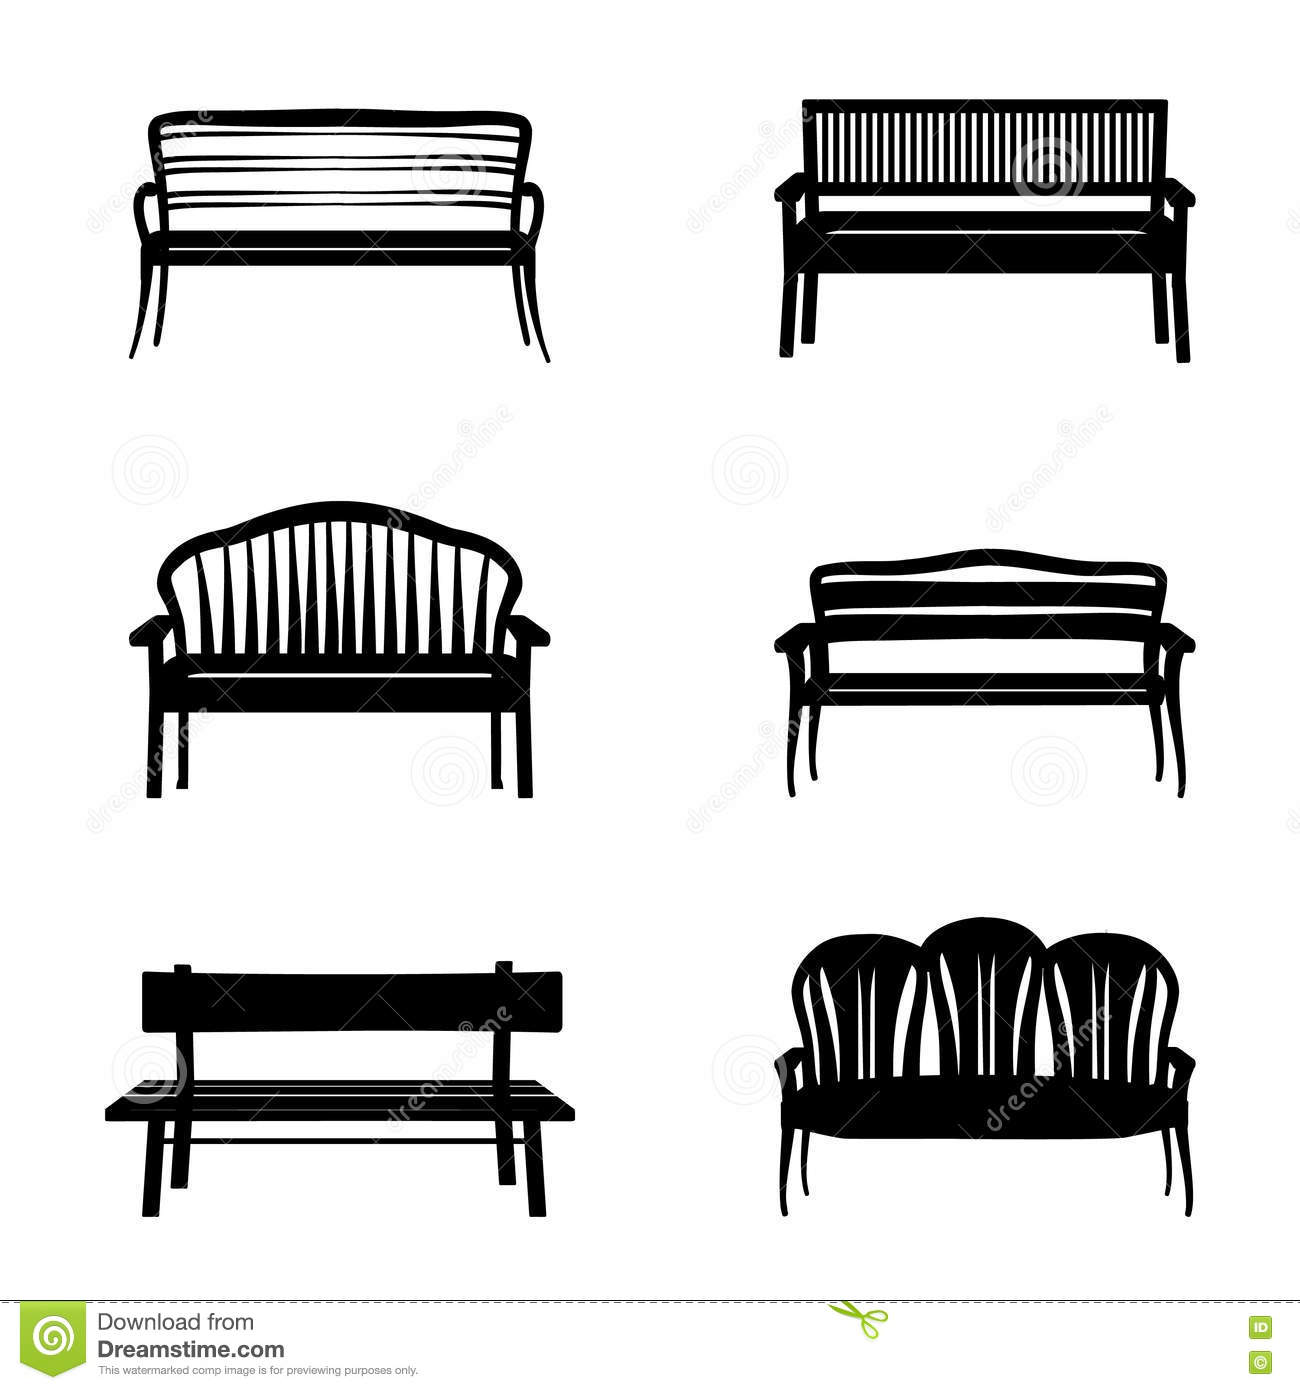 Park Wooden Bench Icon On White In Flat Style Cartoon Vector 78369999